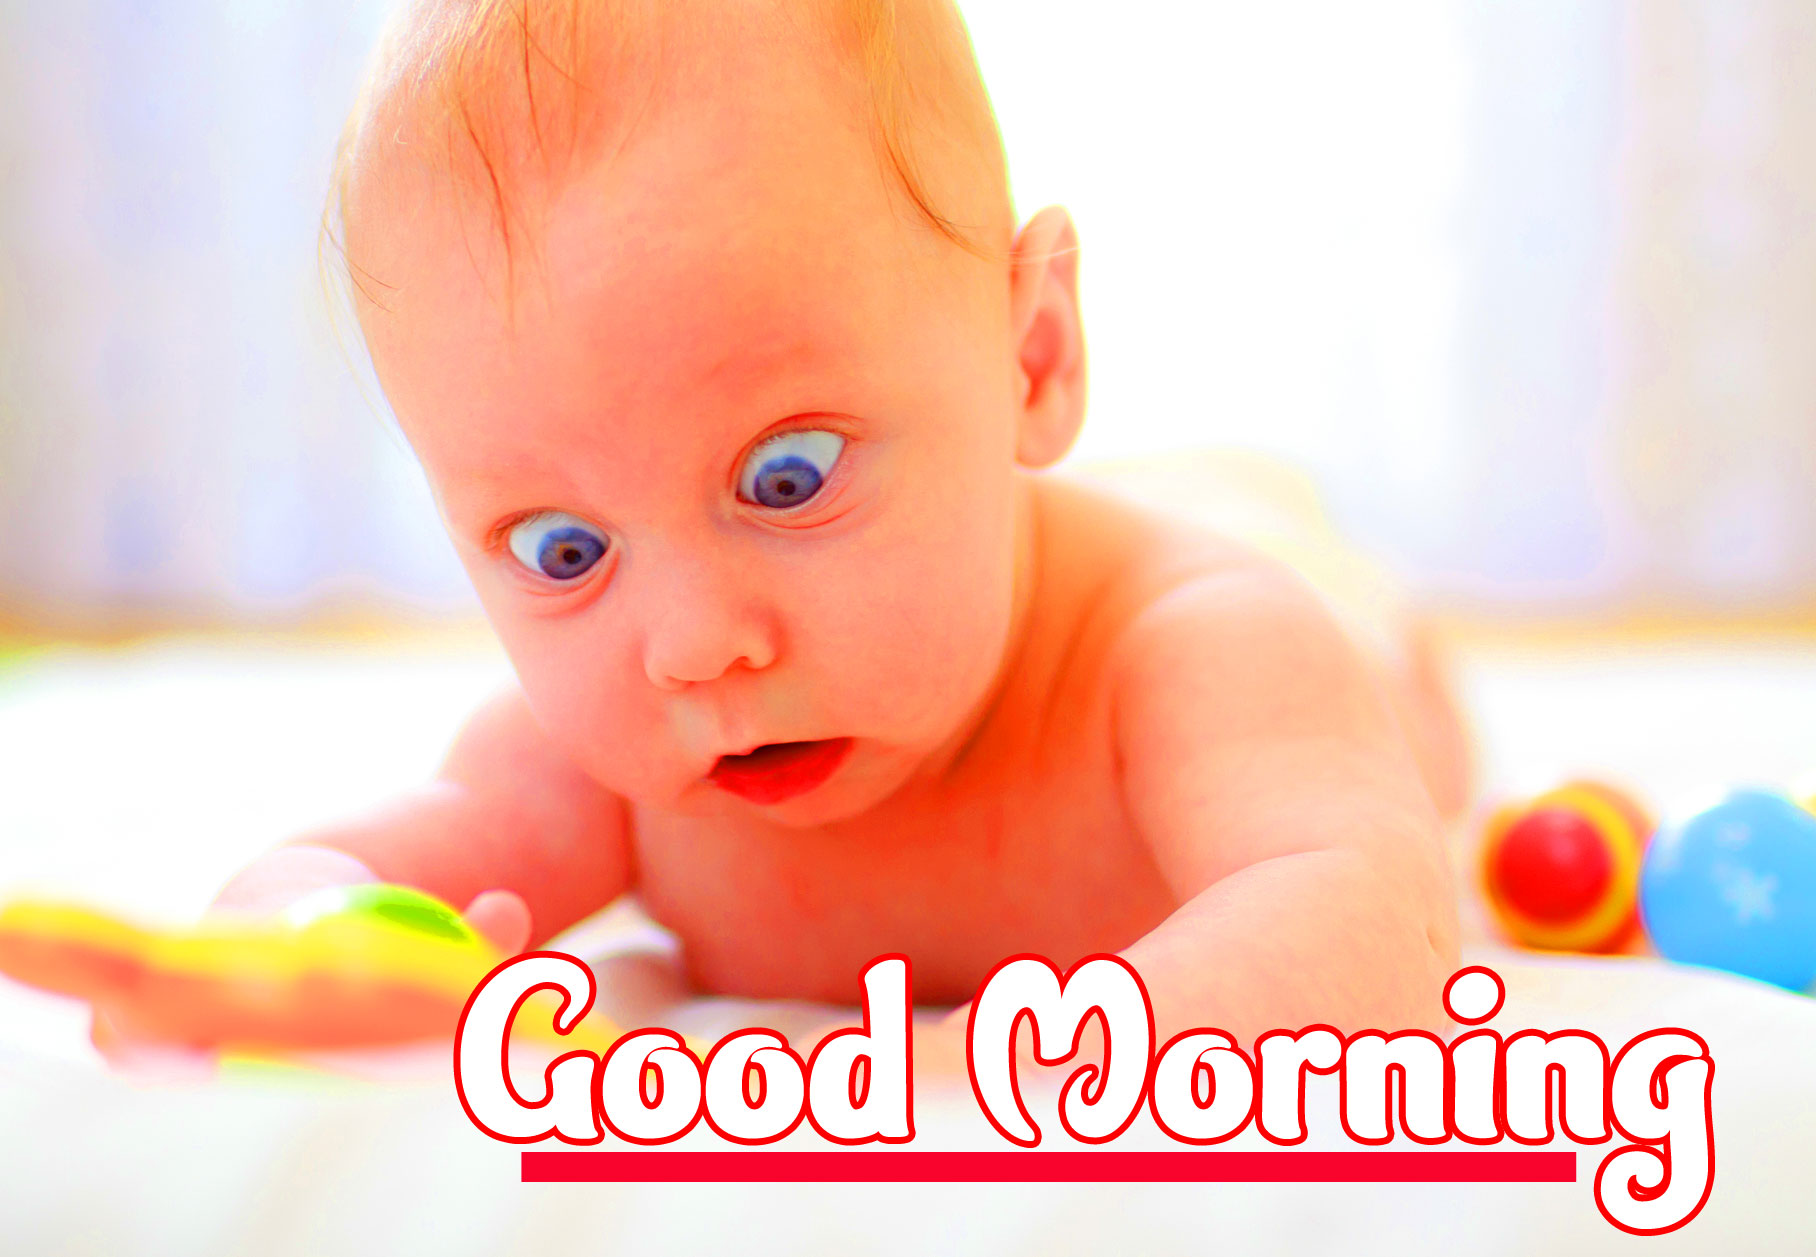 Funny Good Morning Wishes Images Download 38